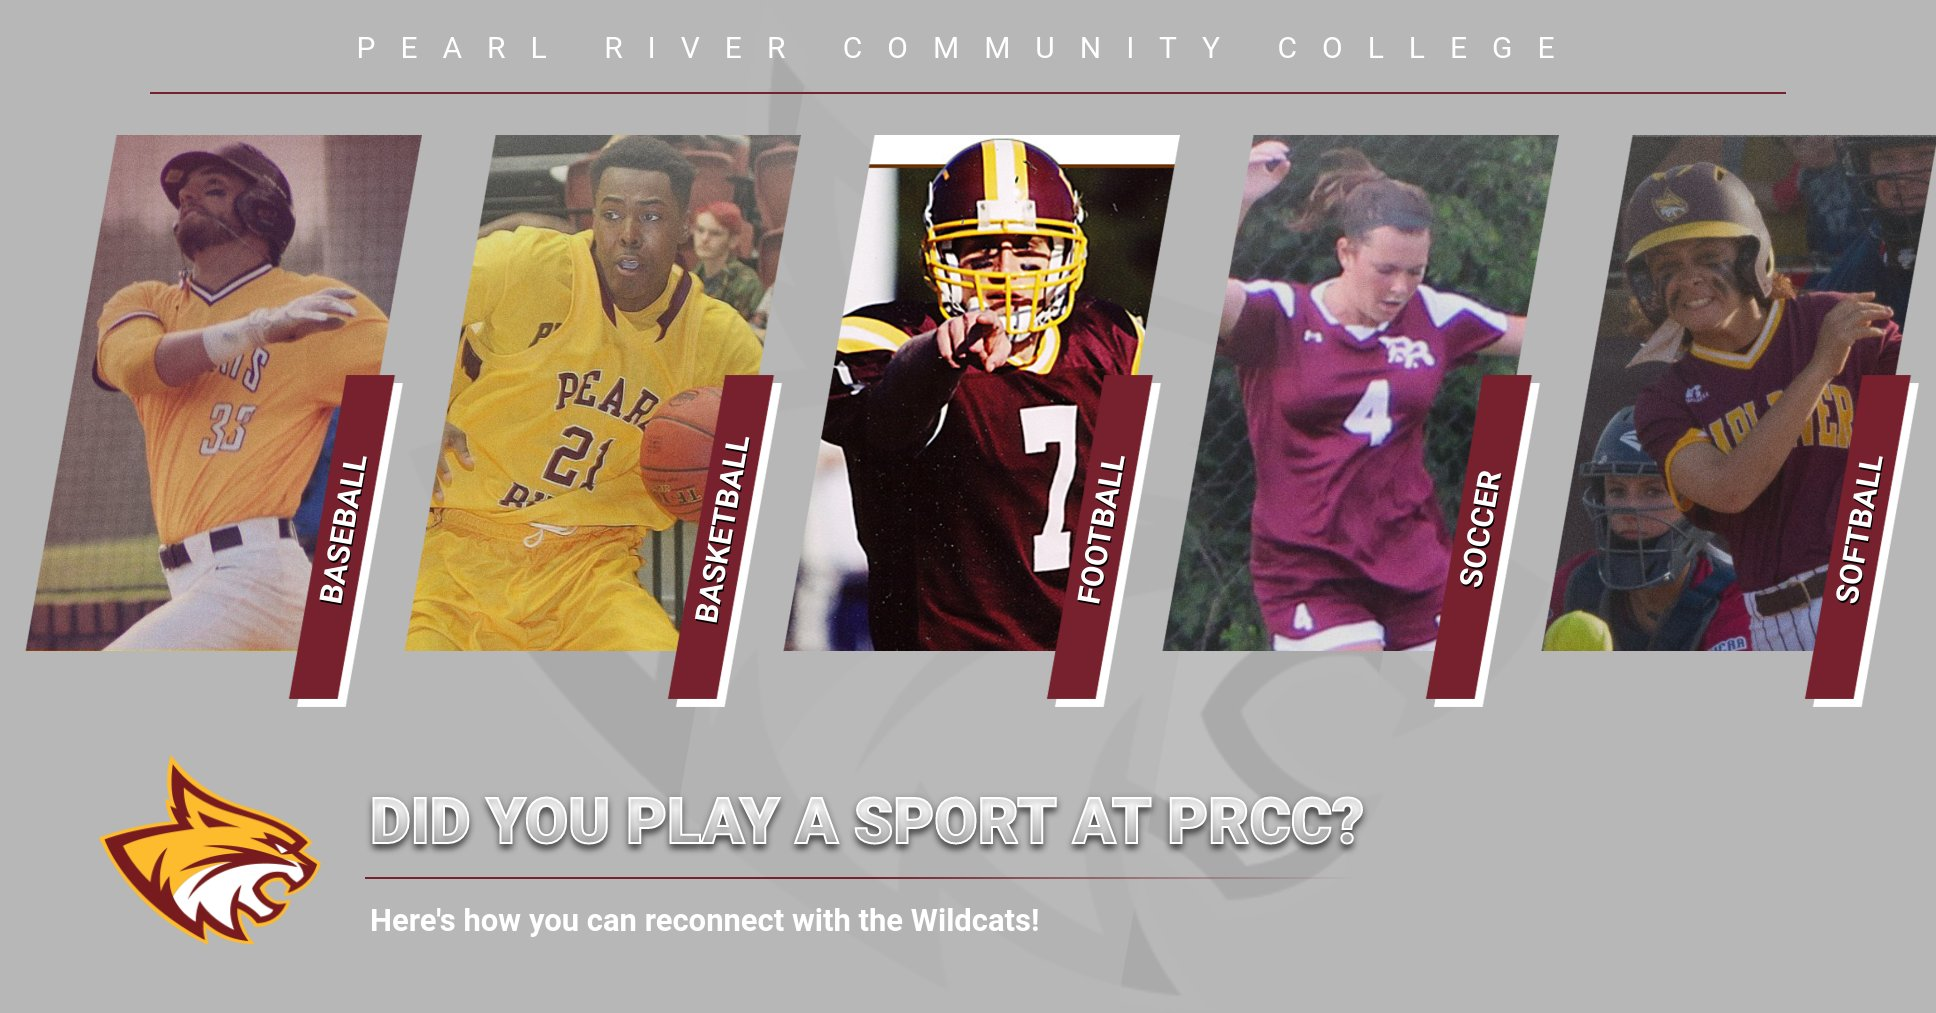 Did you play a sport at PRCC? Here's how you can reconnect with the Wildcats